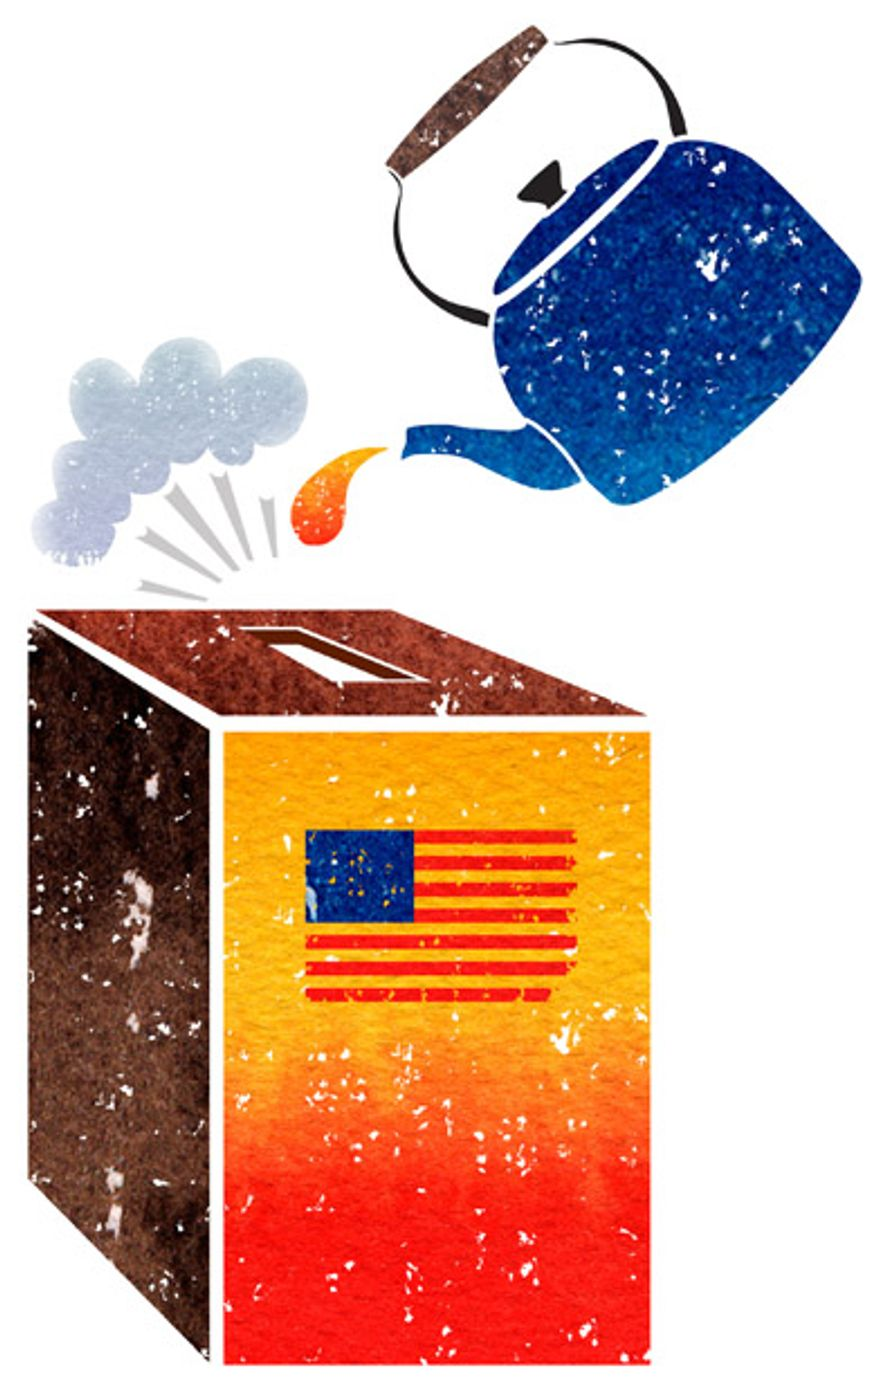 Illustration: Tea Party elections by Greg Groesch for The Washington Times